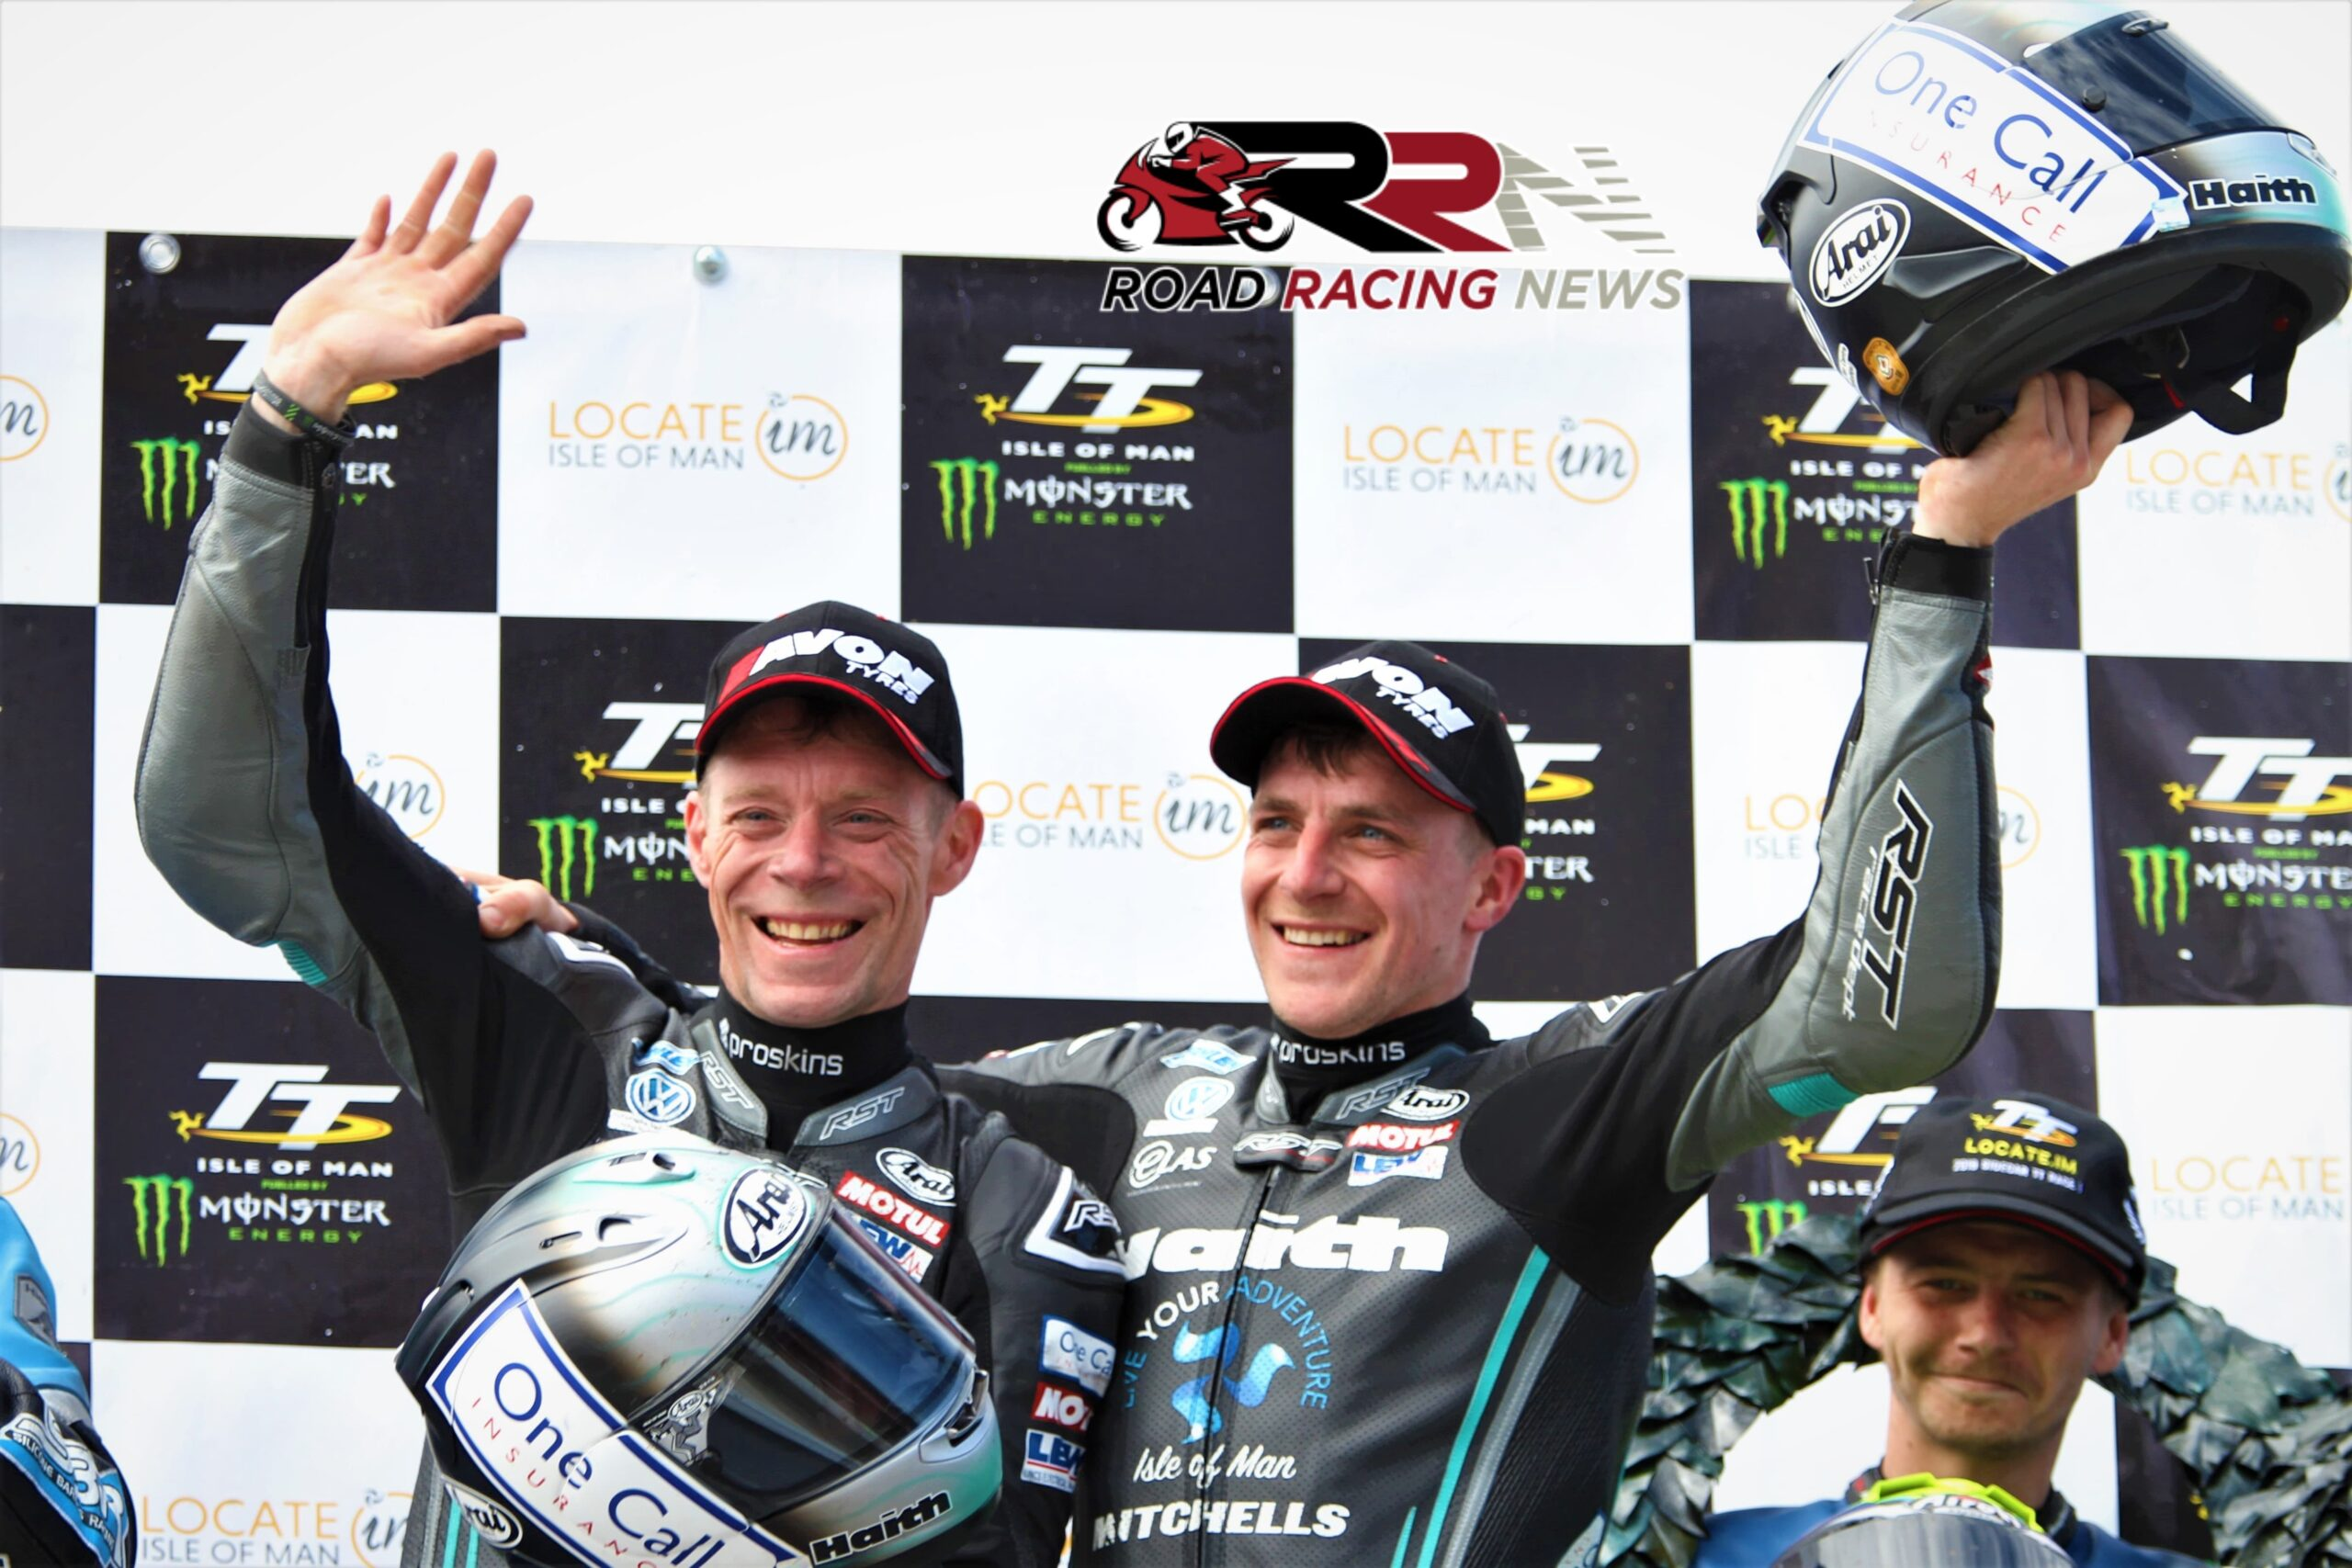 TT 2019: Sidecar Stats/Facts Round Up